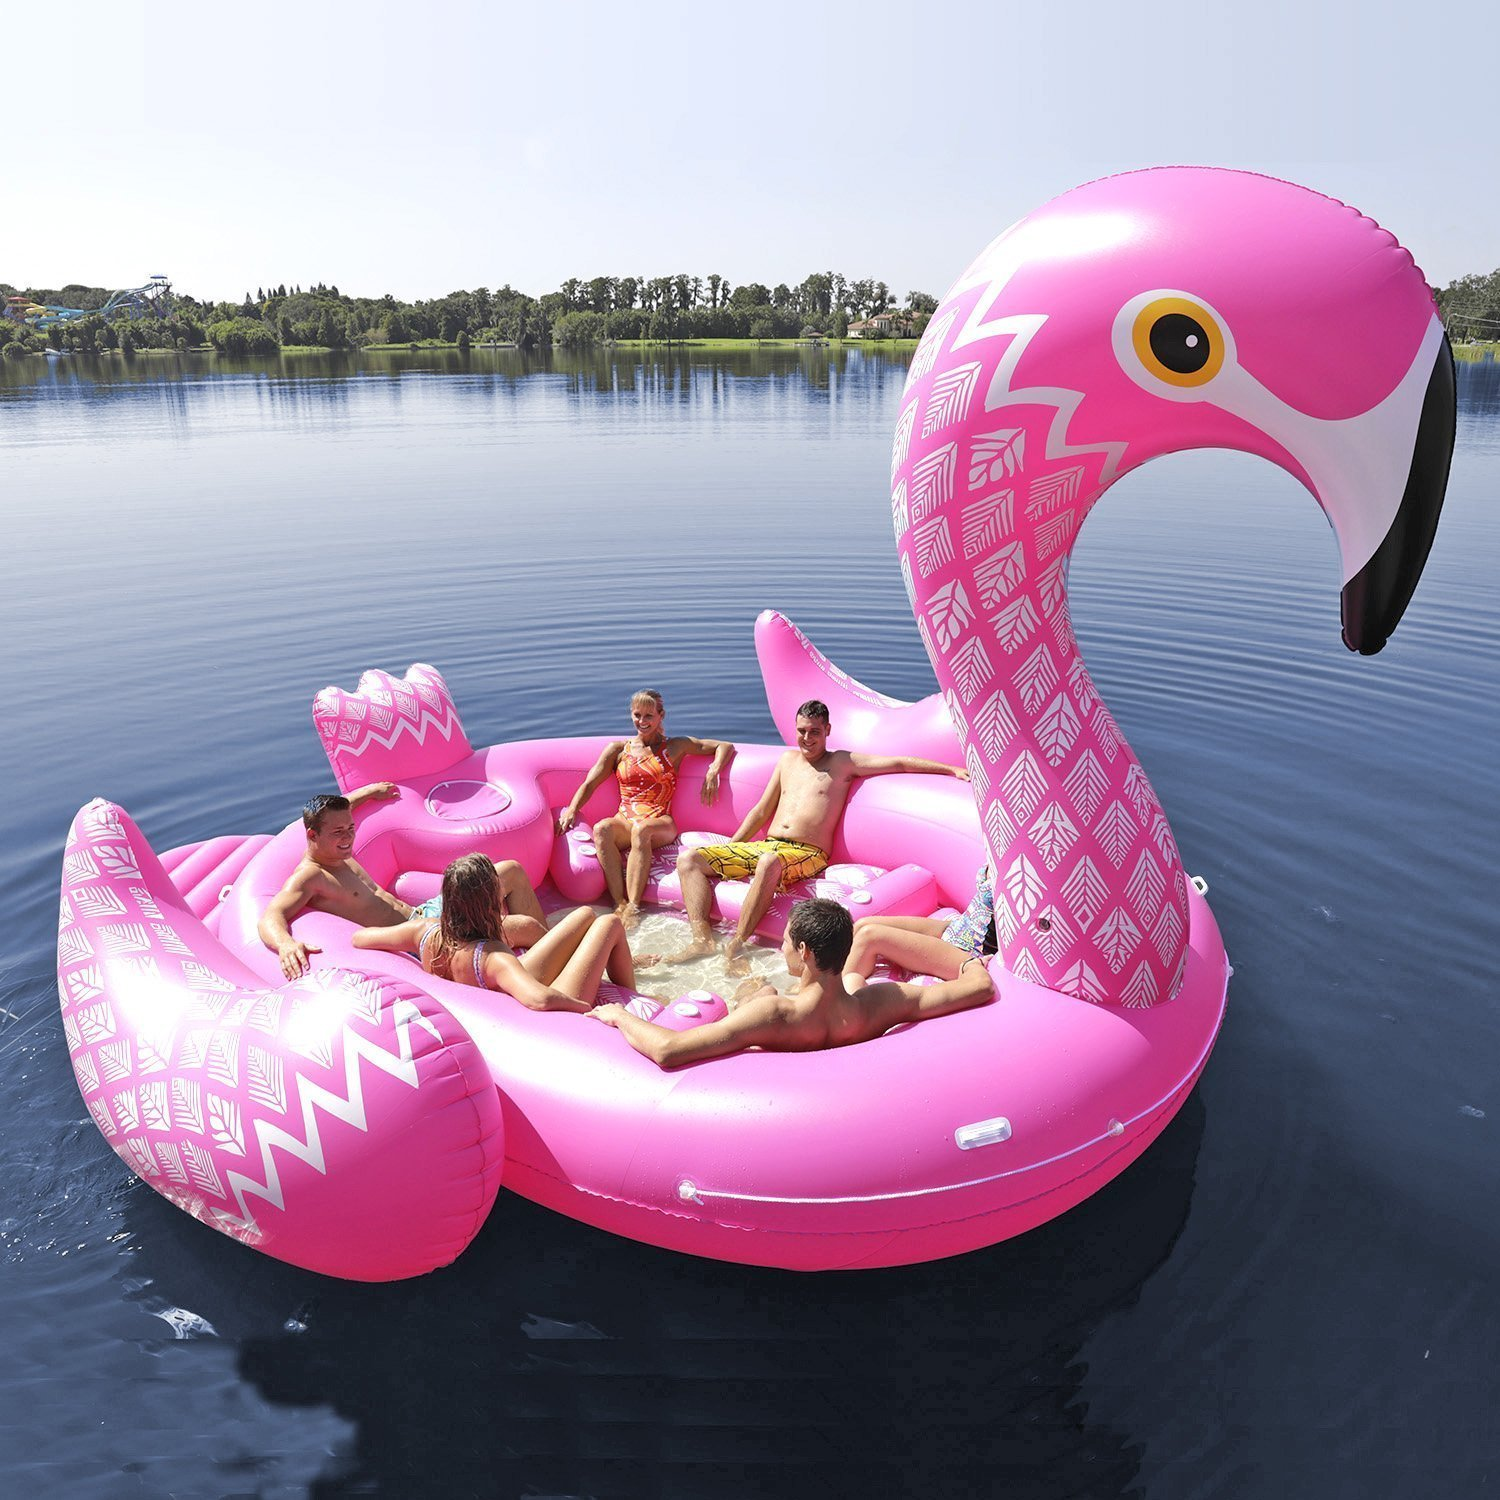 Sun Pleasure Party Bird Island Giant Flamingo Float - Fast Speed Pump Included - Flamingo with Pump and Carrying Bag - use in Lake, Ocean, River, Pool Floats for up to 6 People by Sun Pleasure (Image #2)